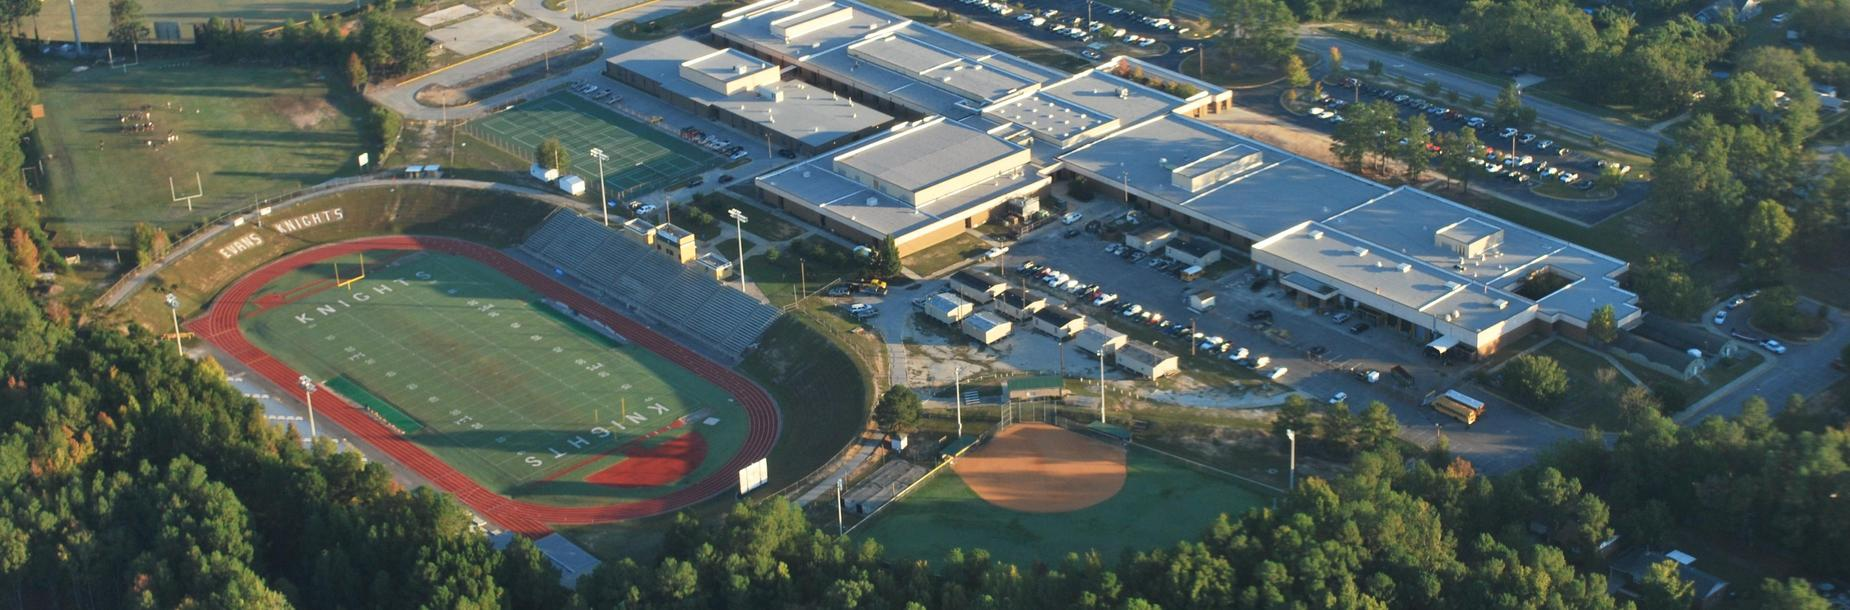 aerial picture of Evans HS